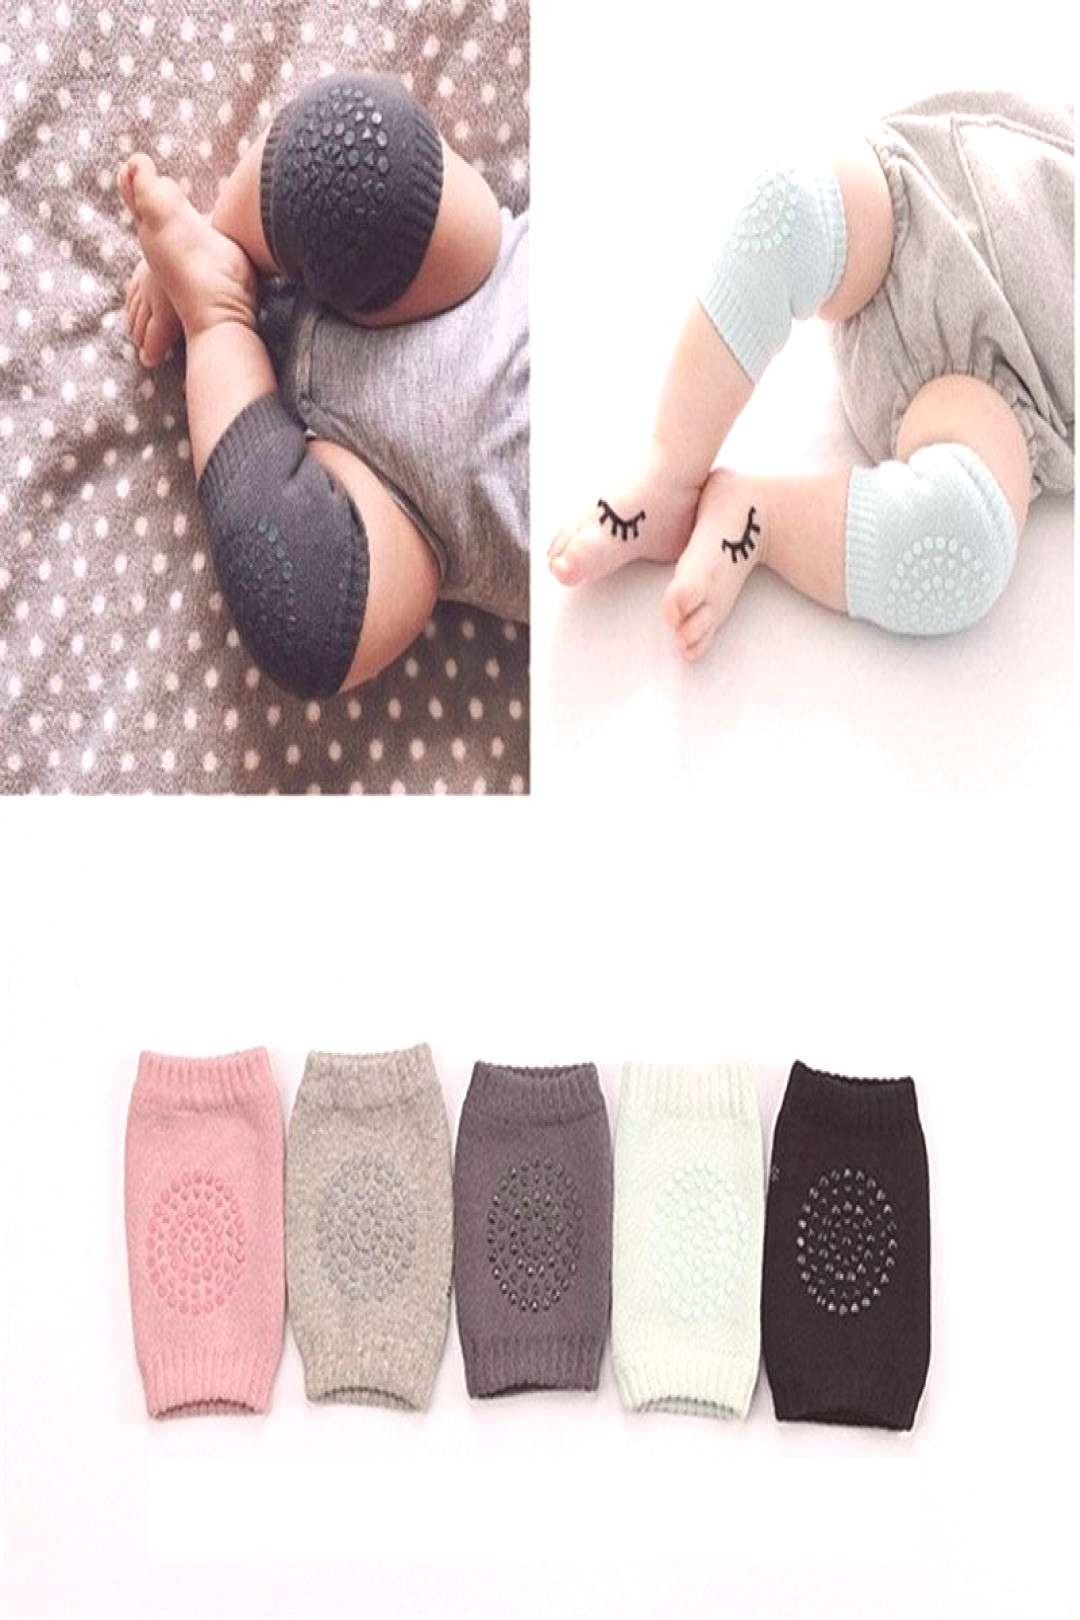 2Pairs/lot 0-3 yrs New Kids Infant Baby Cotton Thicken fashion Multifunction Crawling leg warmers C